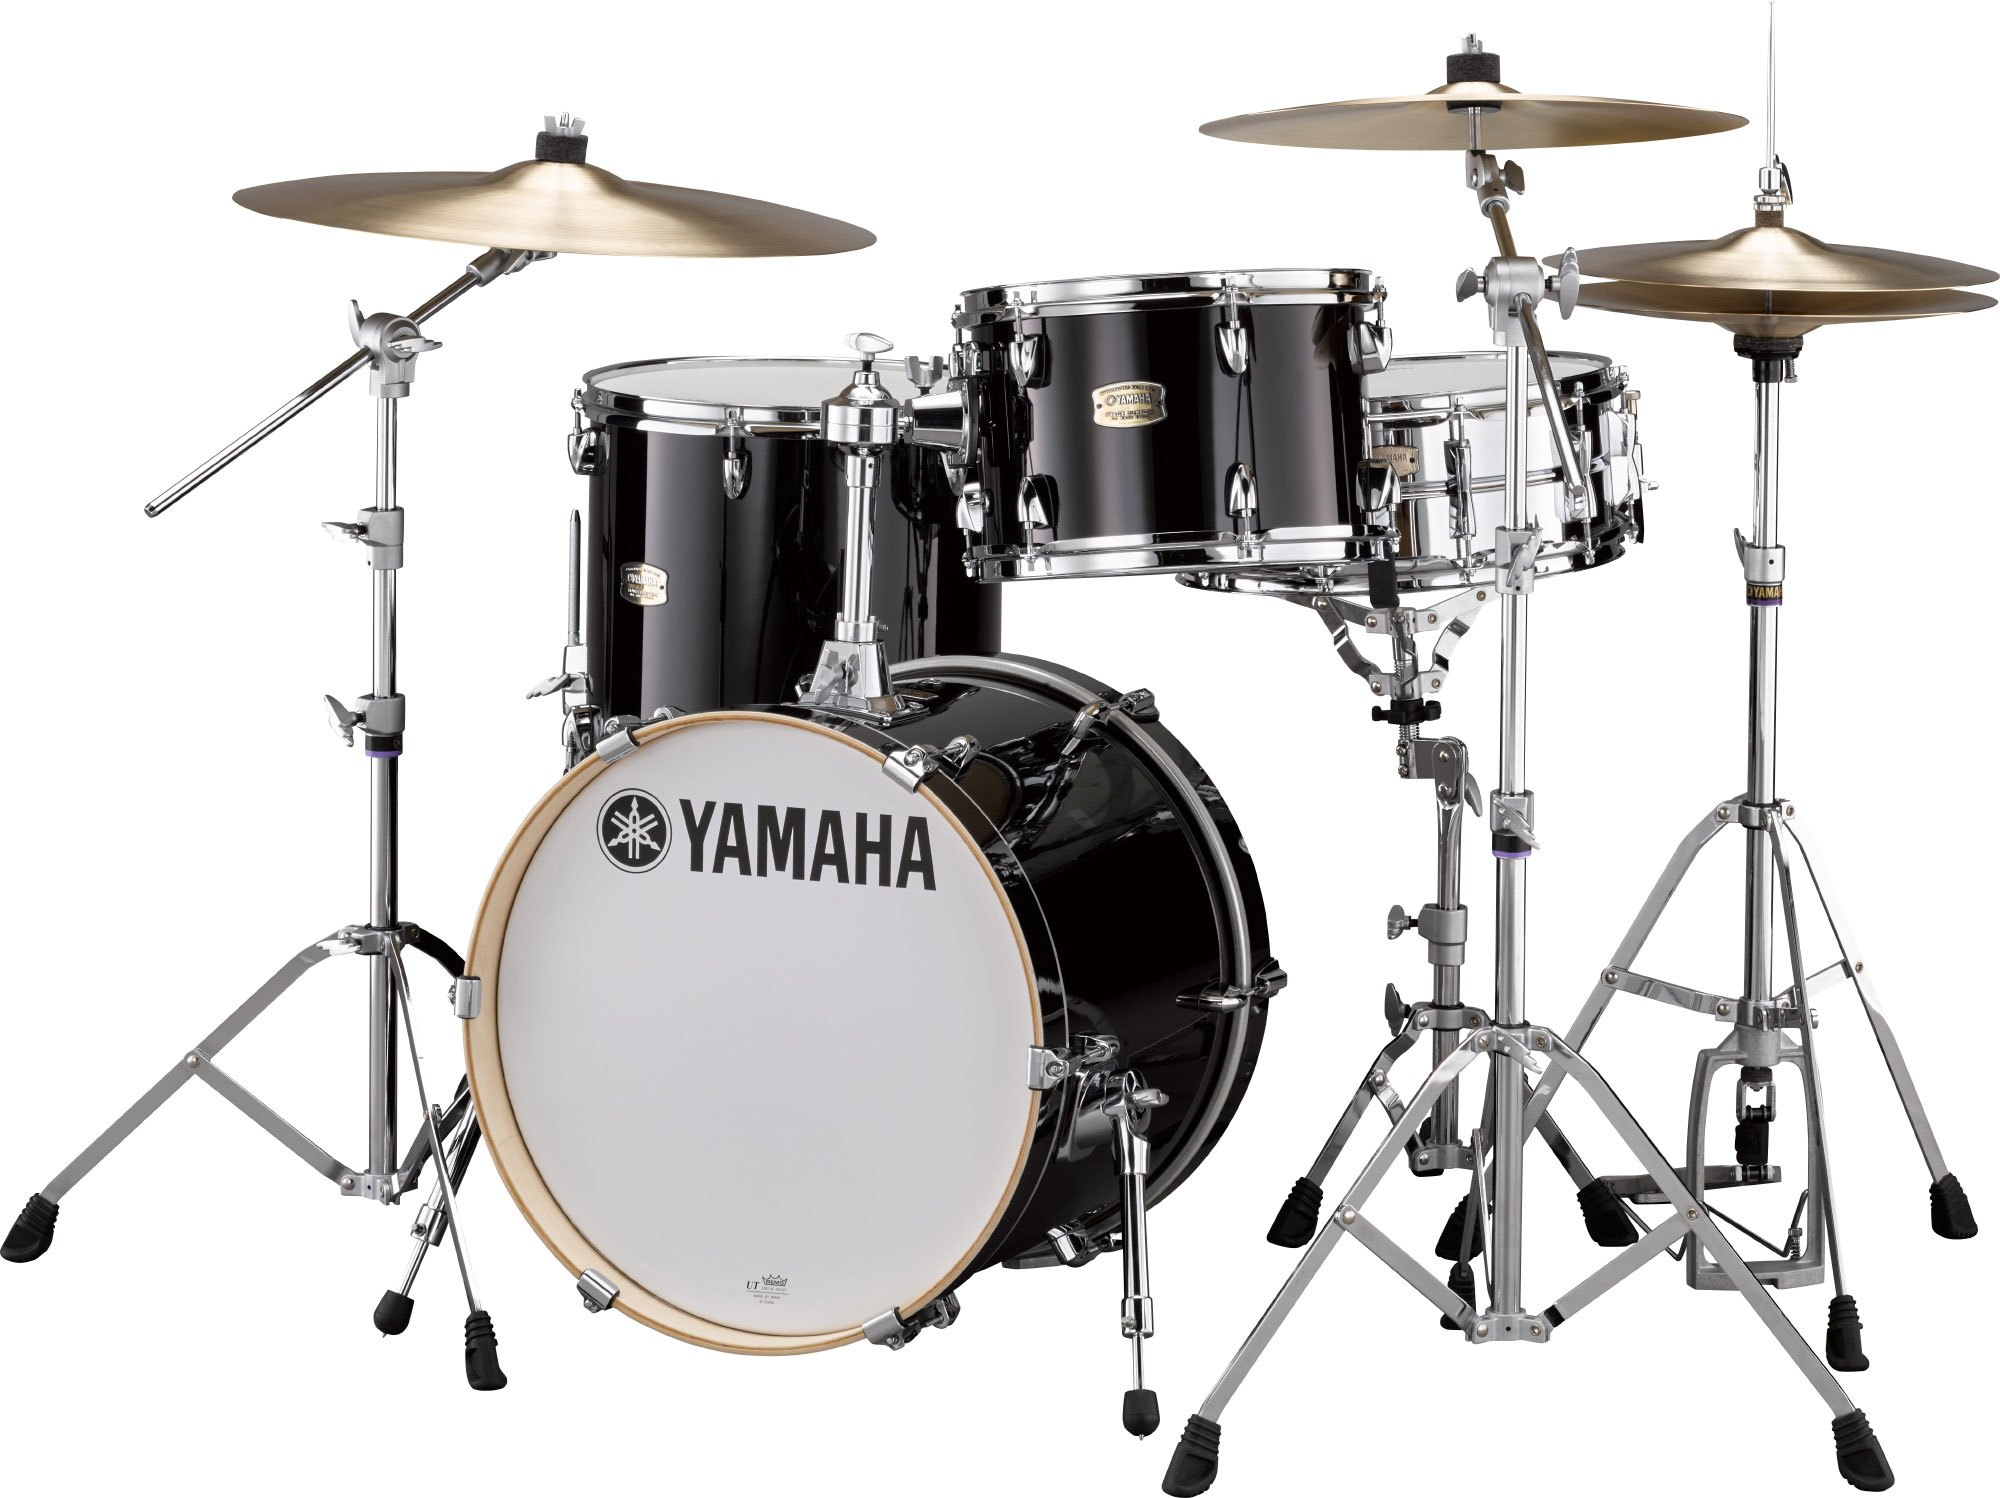 Yamaha Stage Custom Birch Bop Trommesæt Raven Black